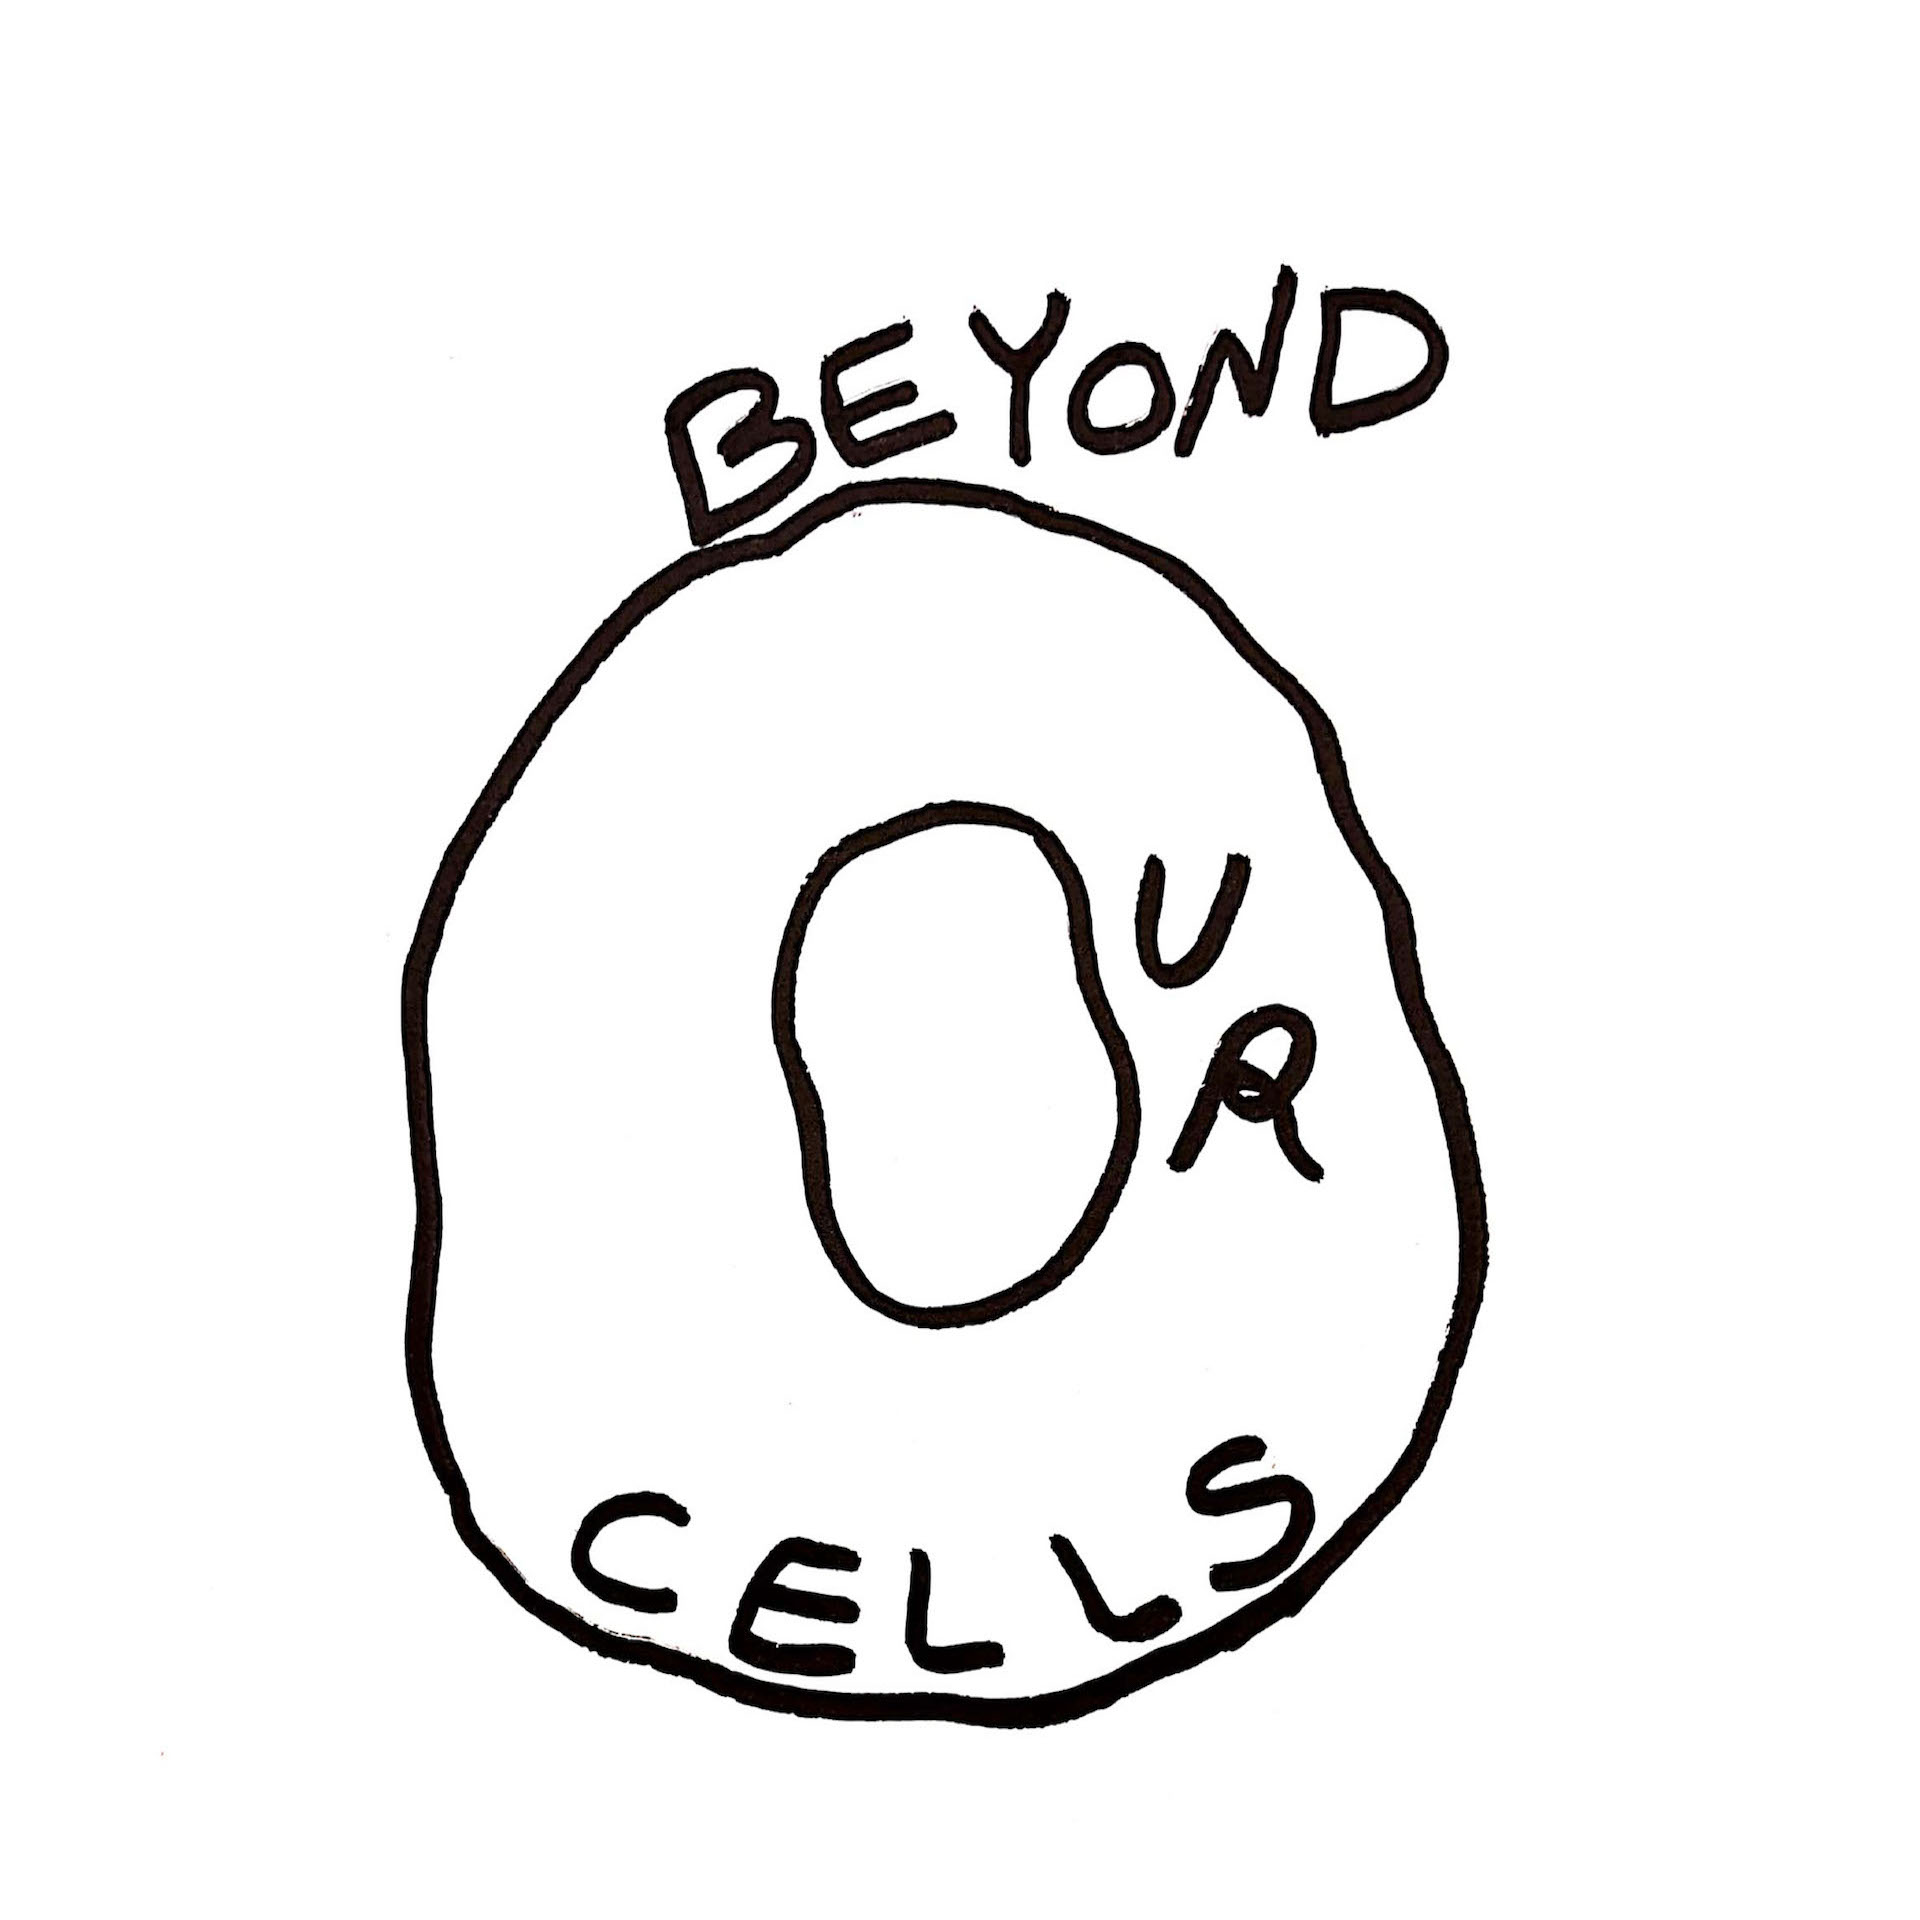 Show artwork for Beyond Our Cells